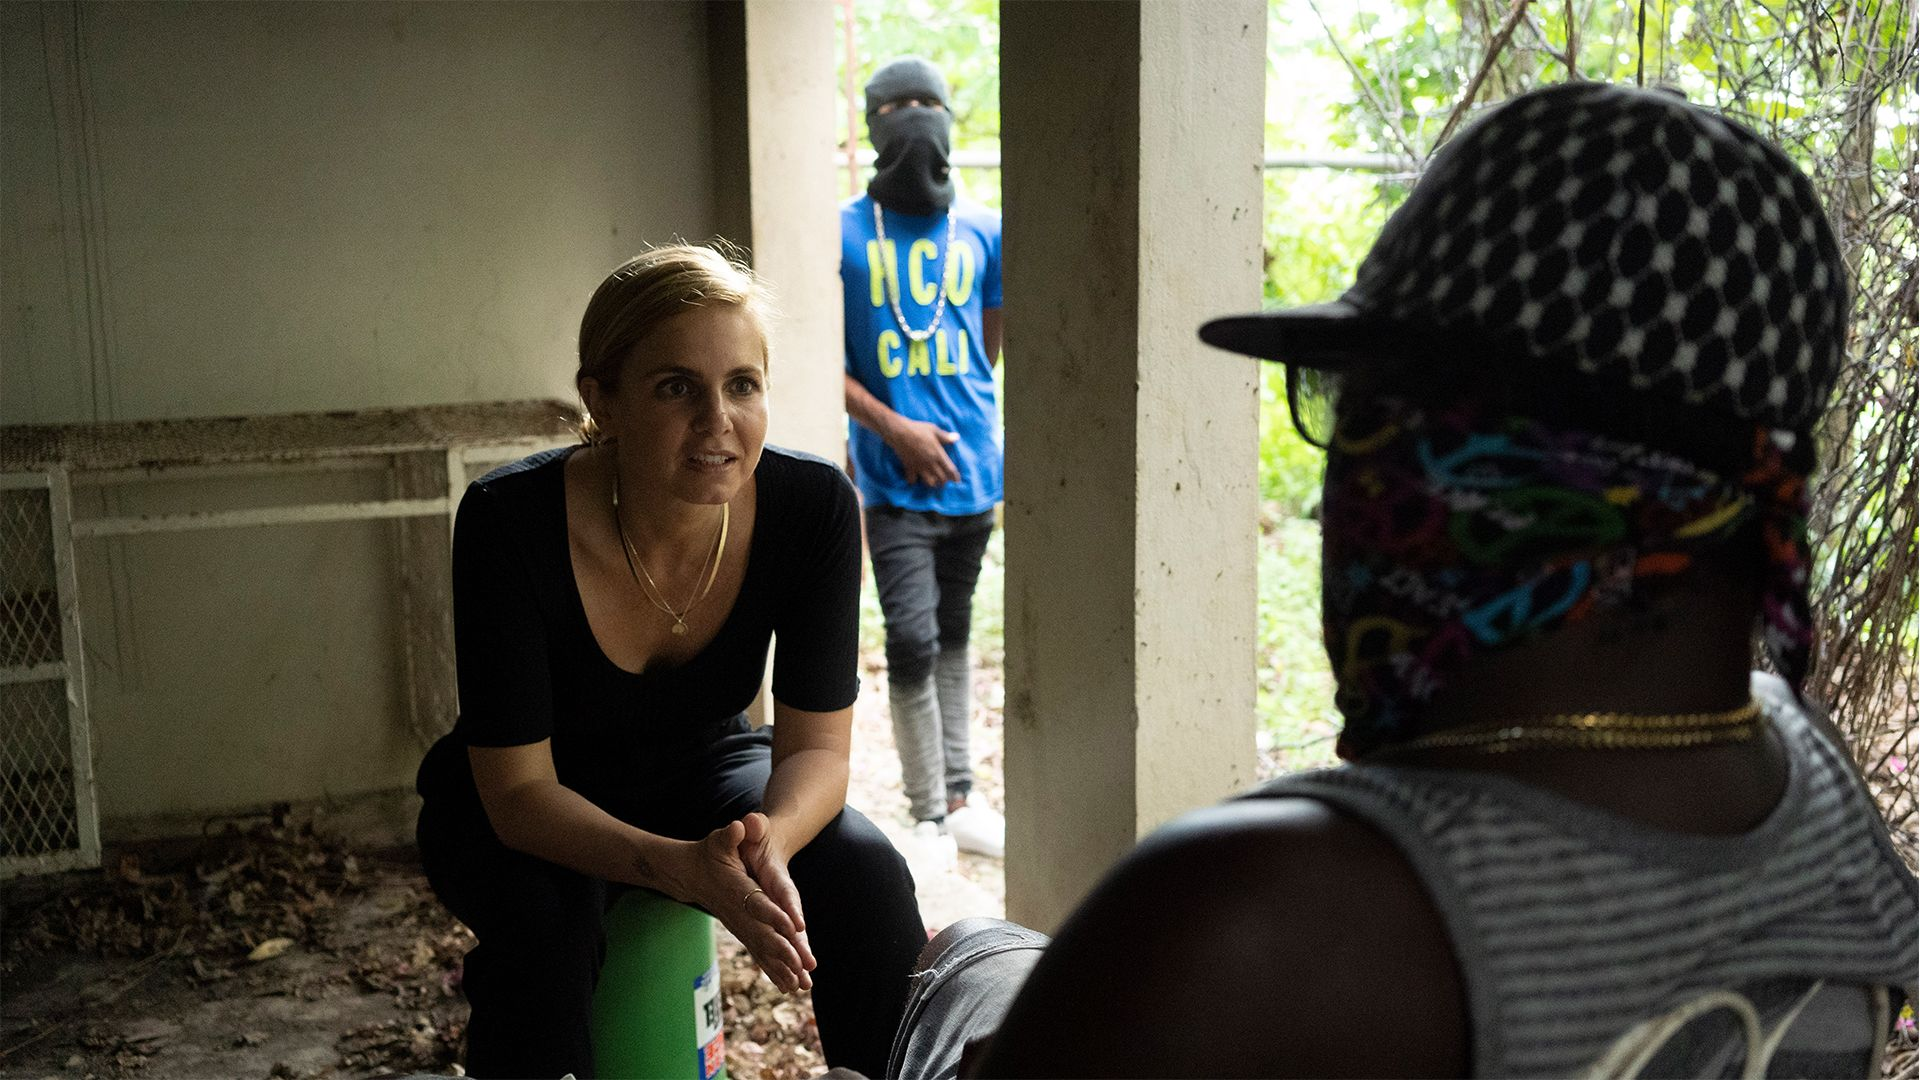 Jamaica - Mariana van Zeller (L) conducting interviews in Jamaica. This is from Trafficked with... [Photo of the day - September 2021]